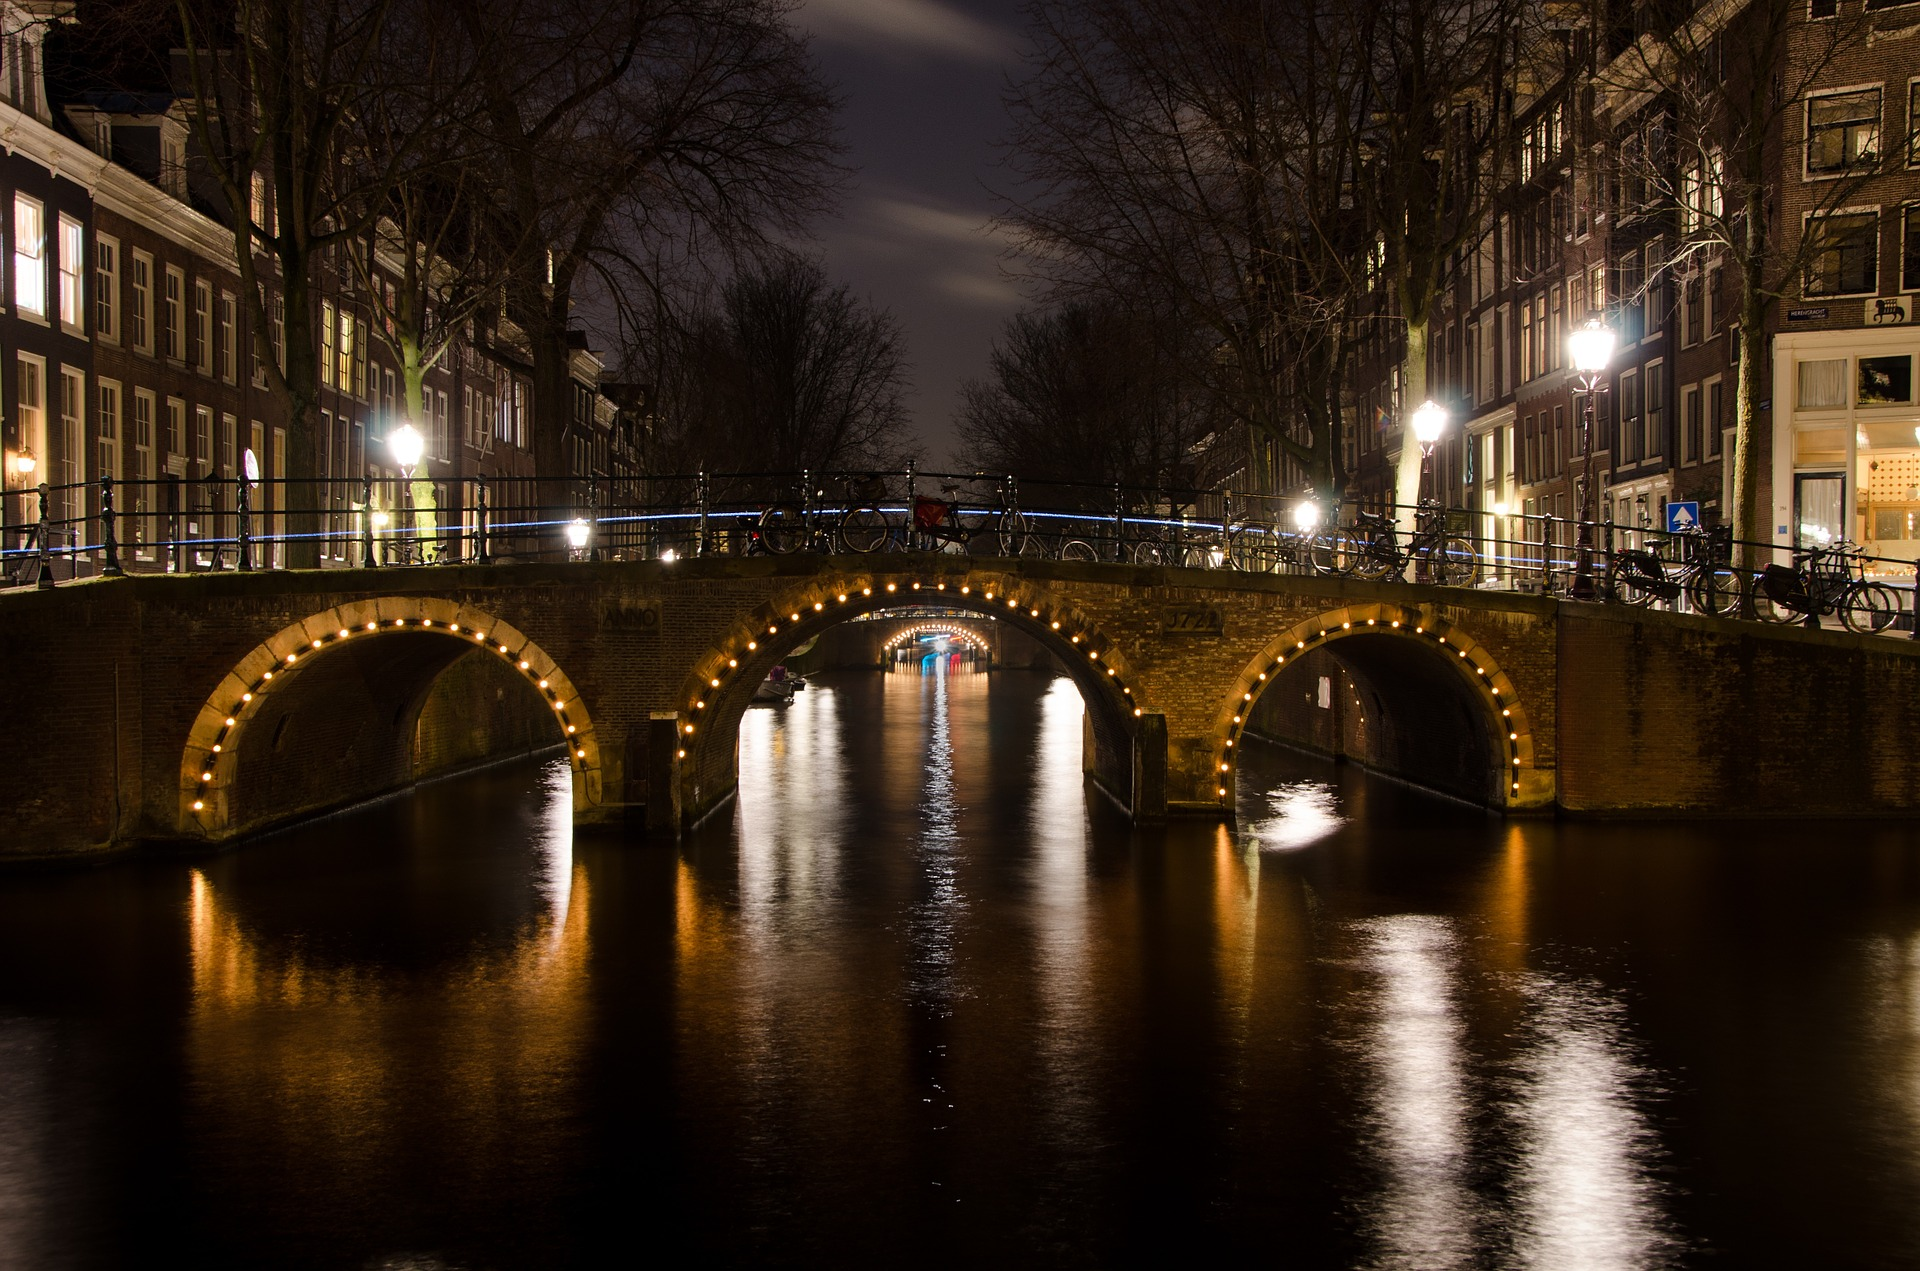 Bridge in the City, Architecture, Bridge, Building, Canal, HQ Photo